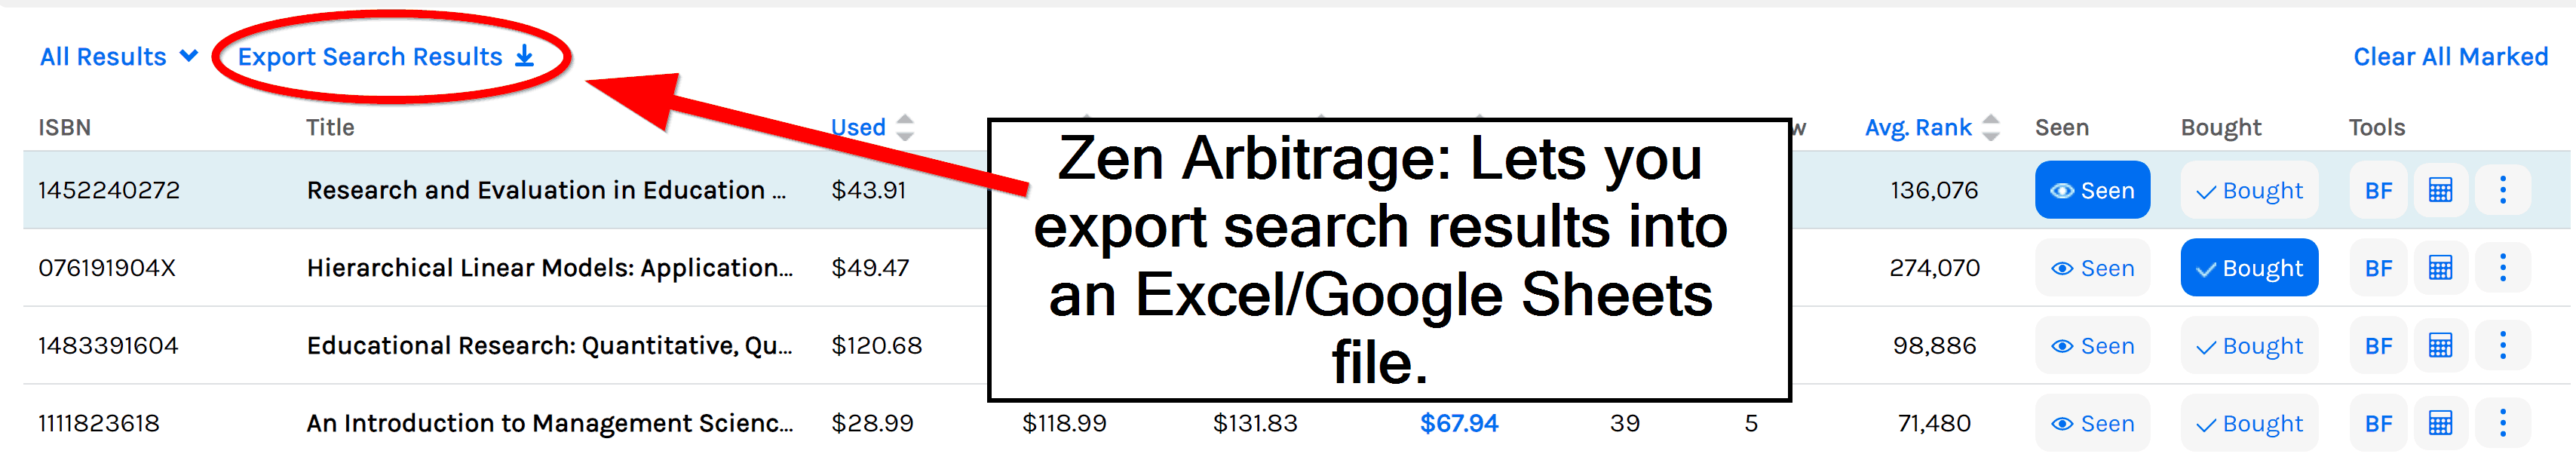 Zen Arbitrage lets you export search results